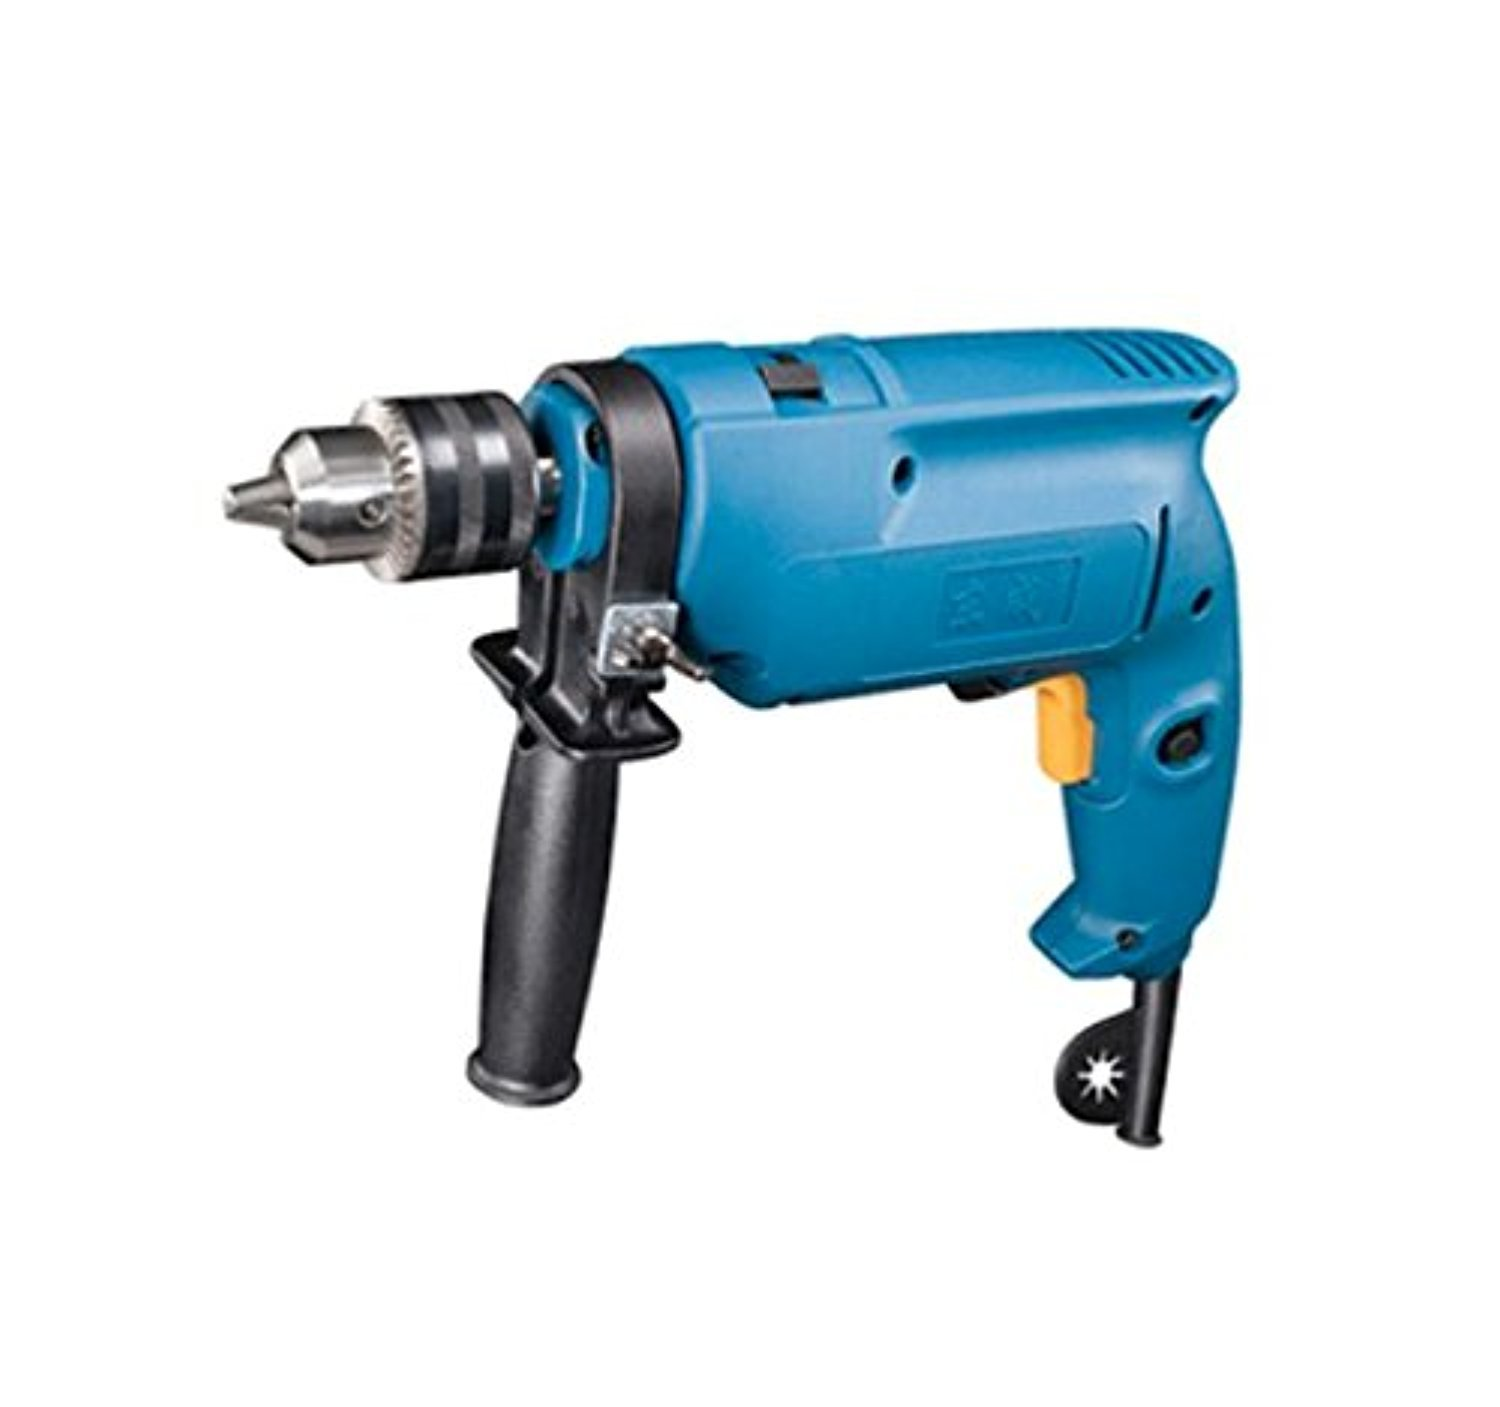 Dongcheng DZJ02-13 Electric Impact Drill 13mm 500W